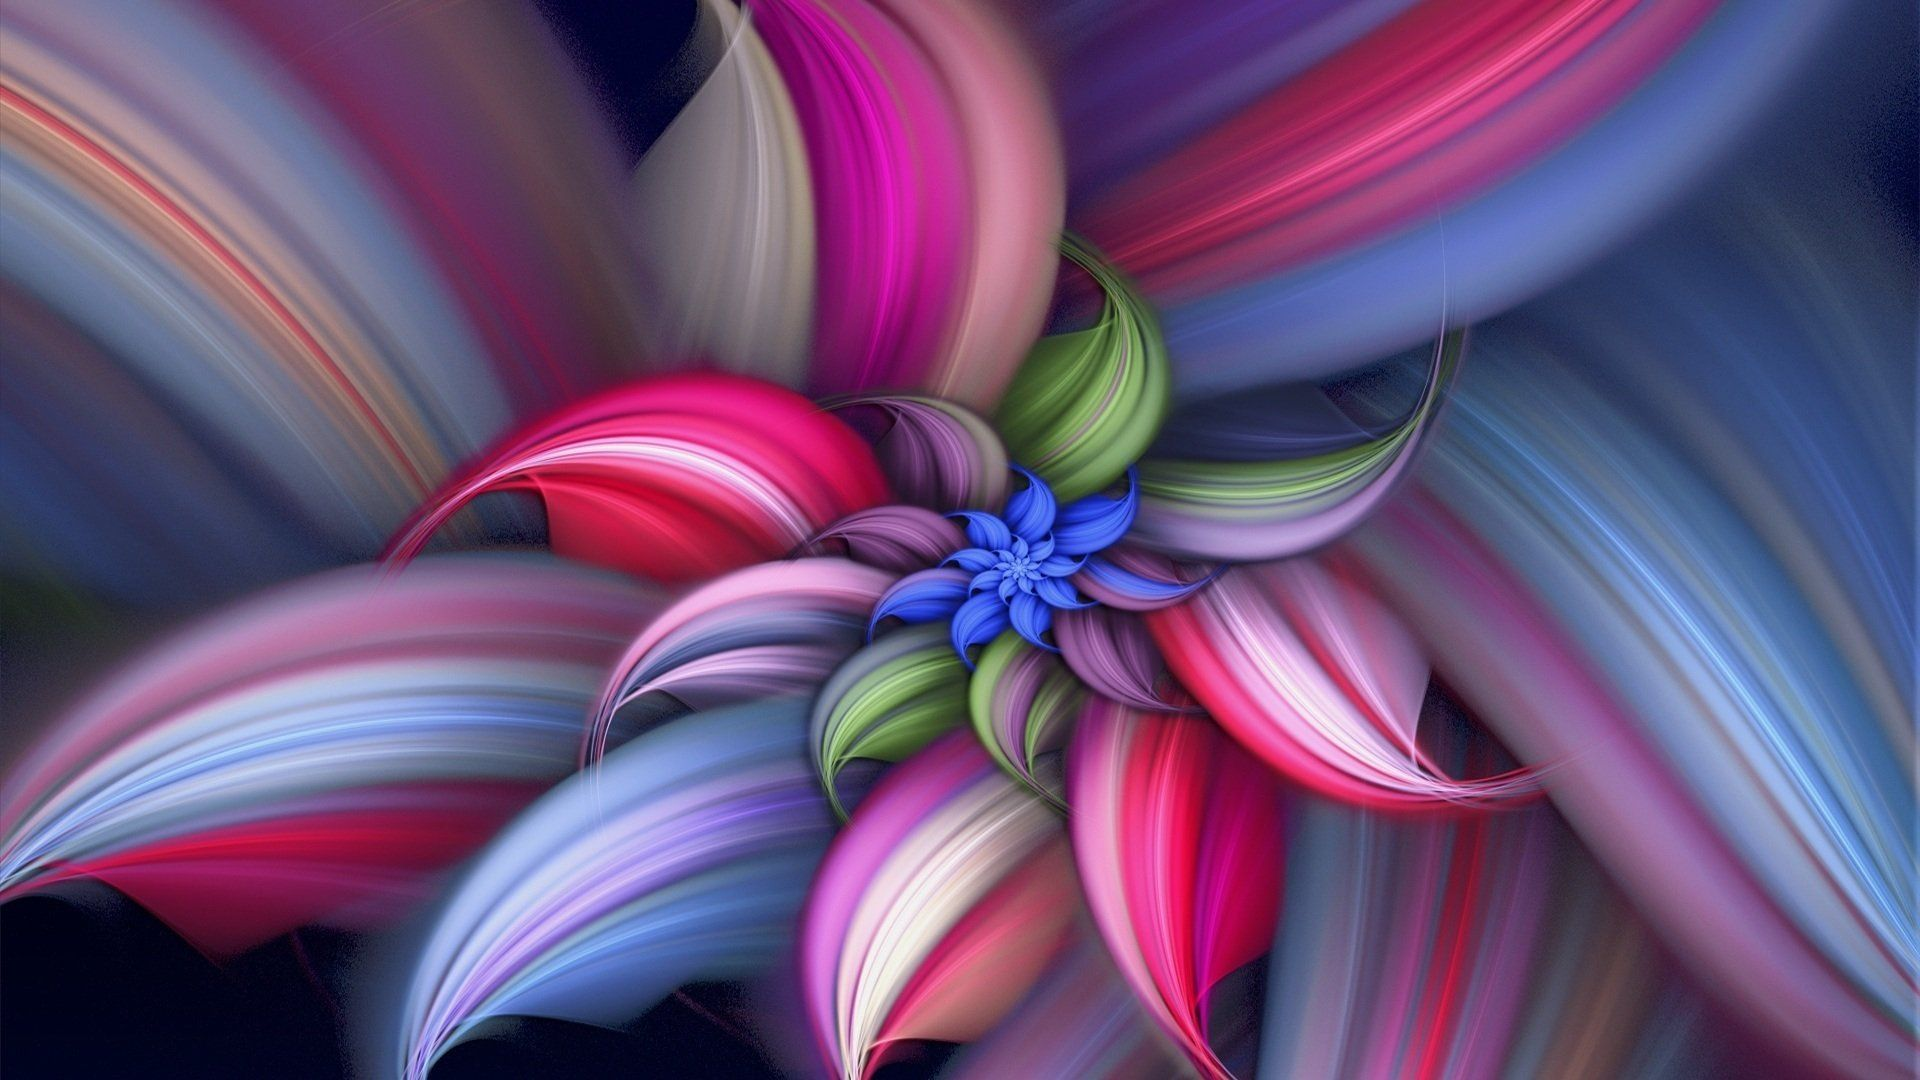 Wallpaper Abstraction, Pictures On A Desktop 3d